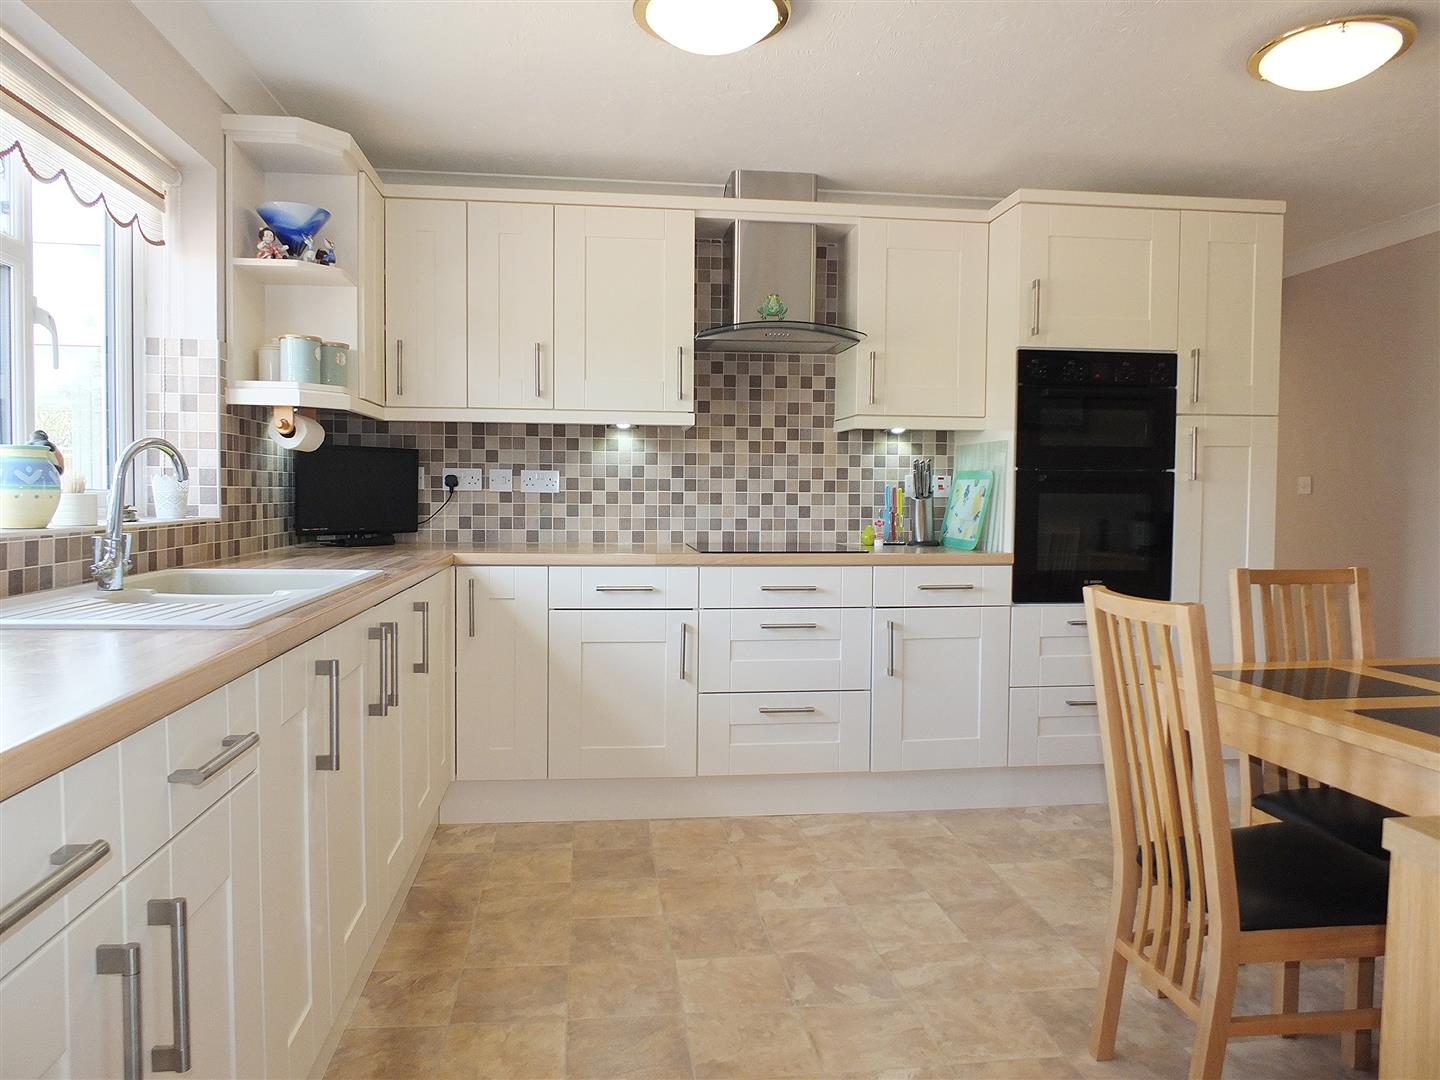 3 bed detached bungalow for sale in Long Sutton Spalding, PE12 9FT 2